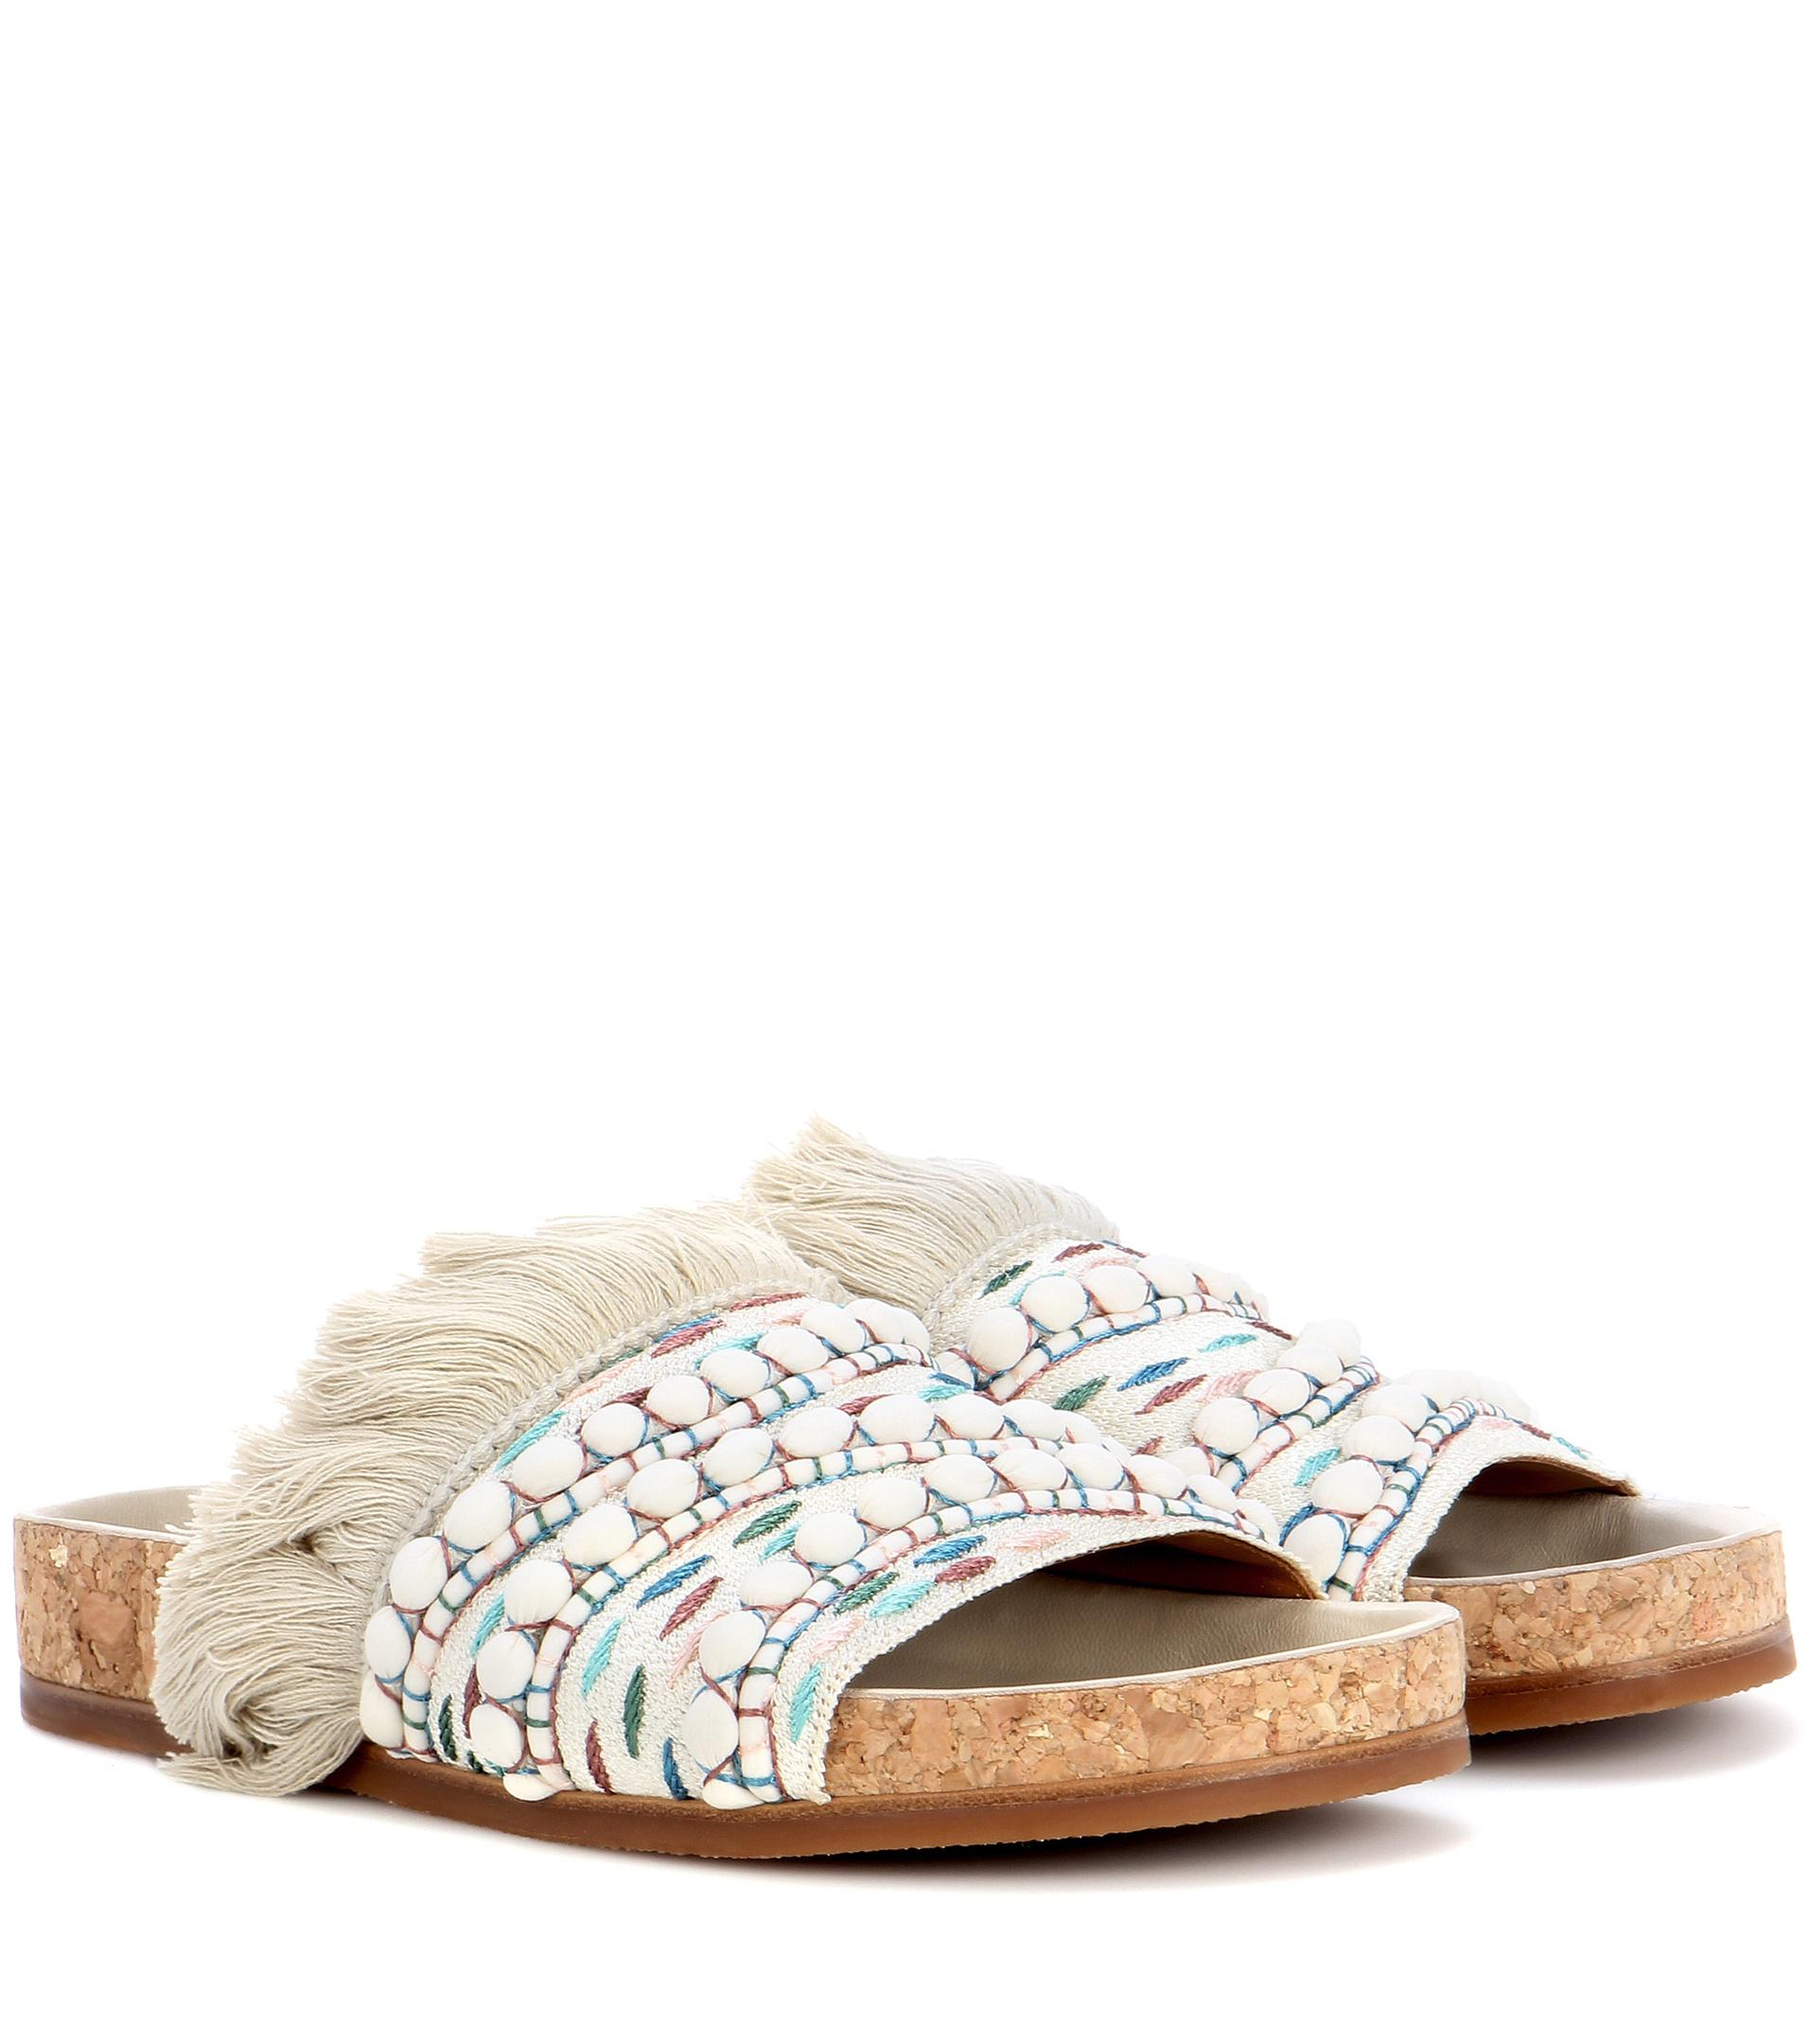 Chloé Embellished slip-on sandals Clearance Clearance Store Inexpensive 100% Guaranteed For Sale Discount Factory Outlet TQjUdpUO